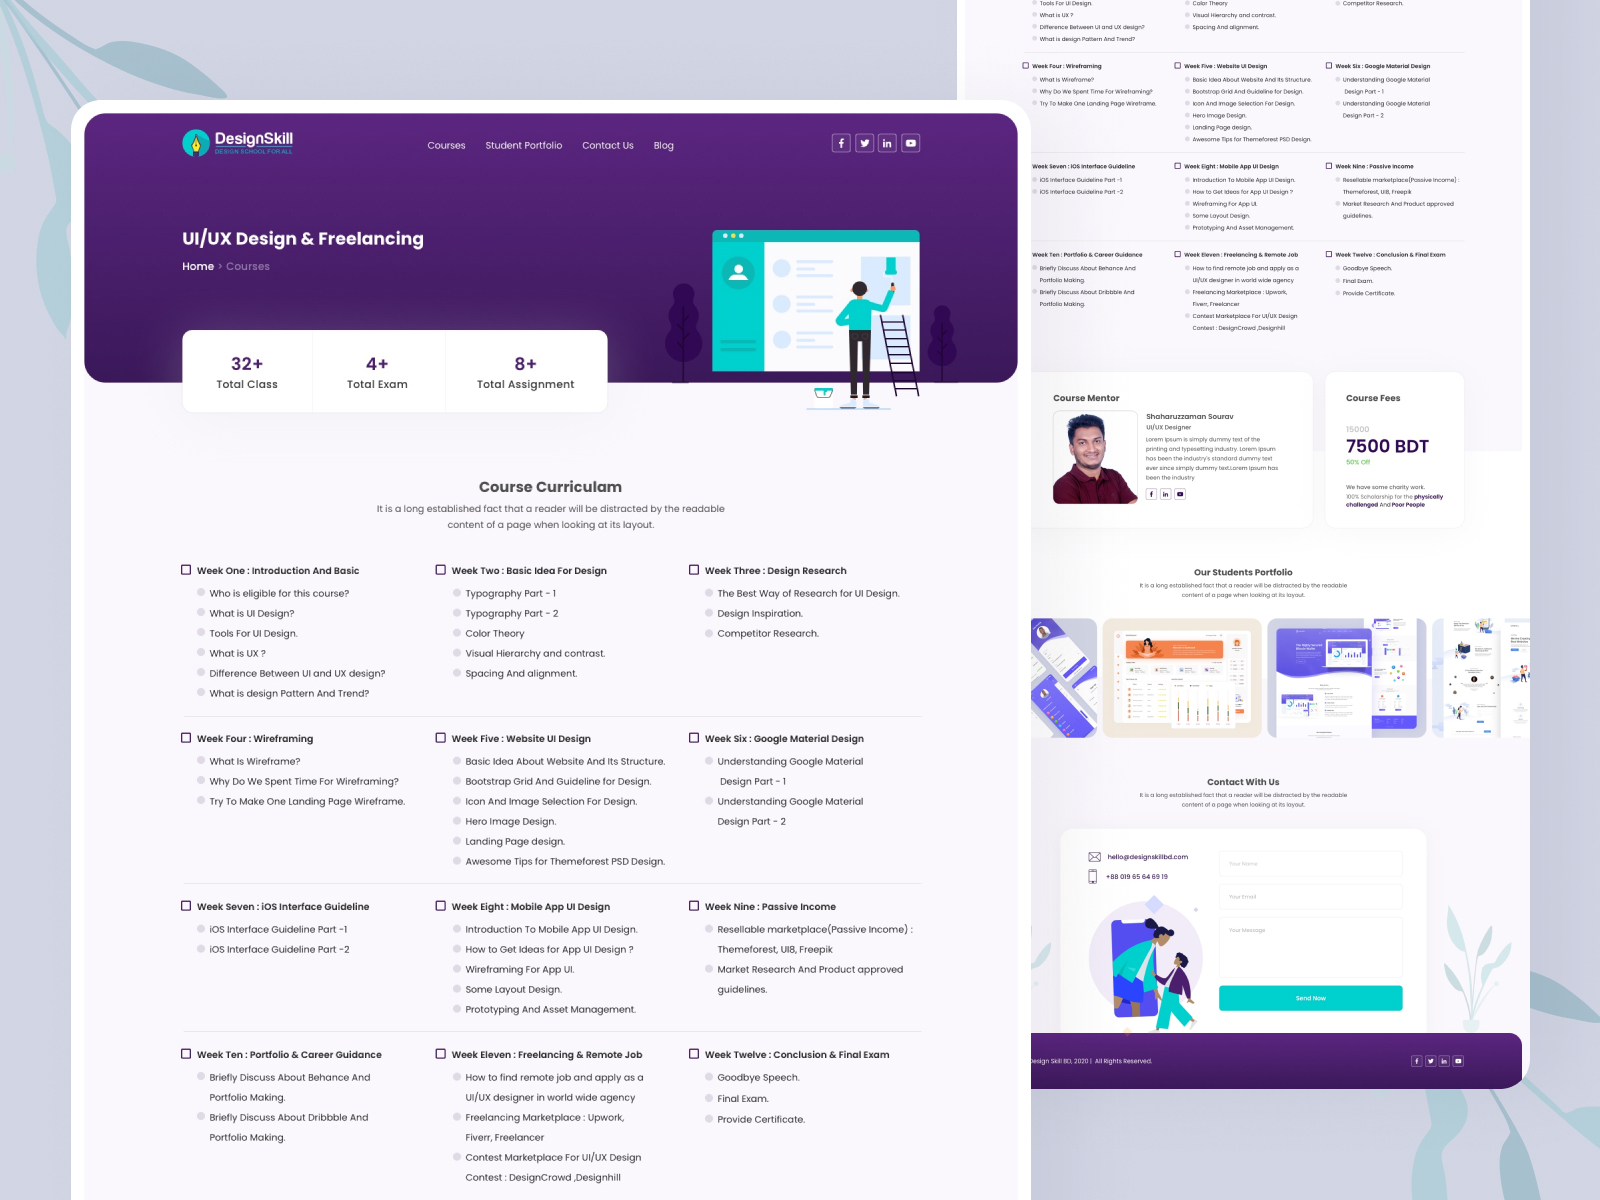 Design Skill Course Details Page By Shaharuzzaman Sourav On Dribbble